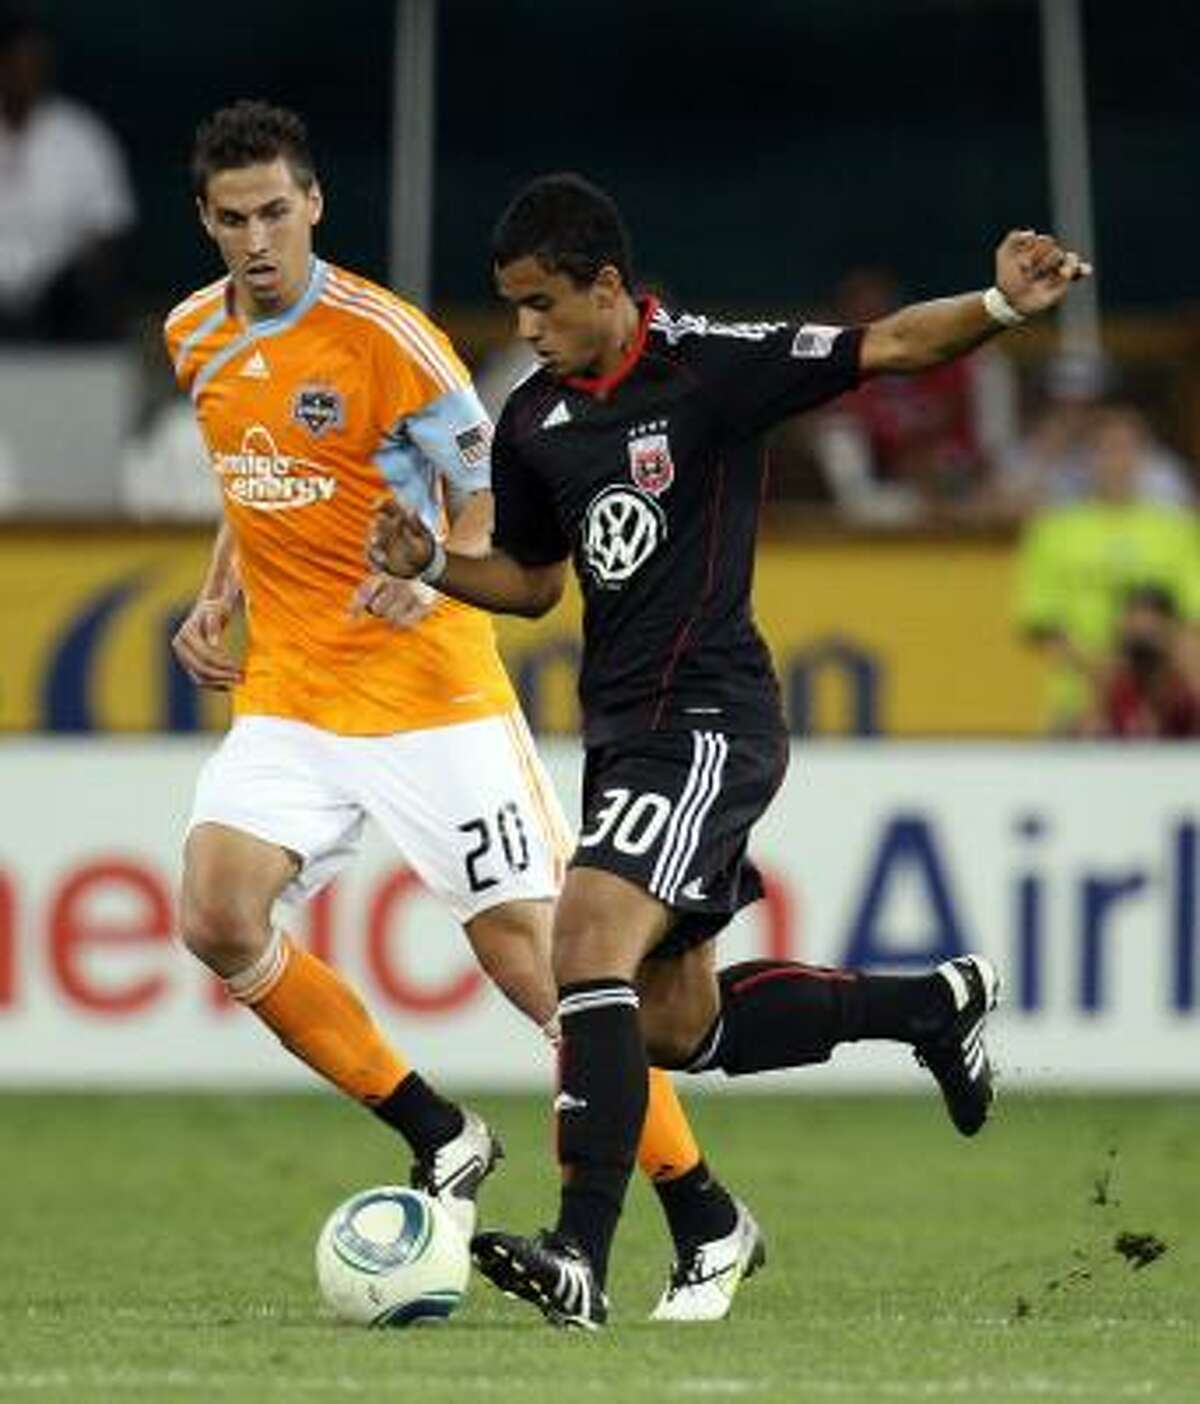 Junior Carreiro of D.C. United controls the ball against Geoff Cameron of the Dynamo.